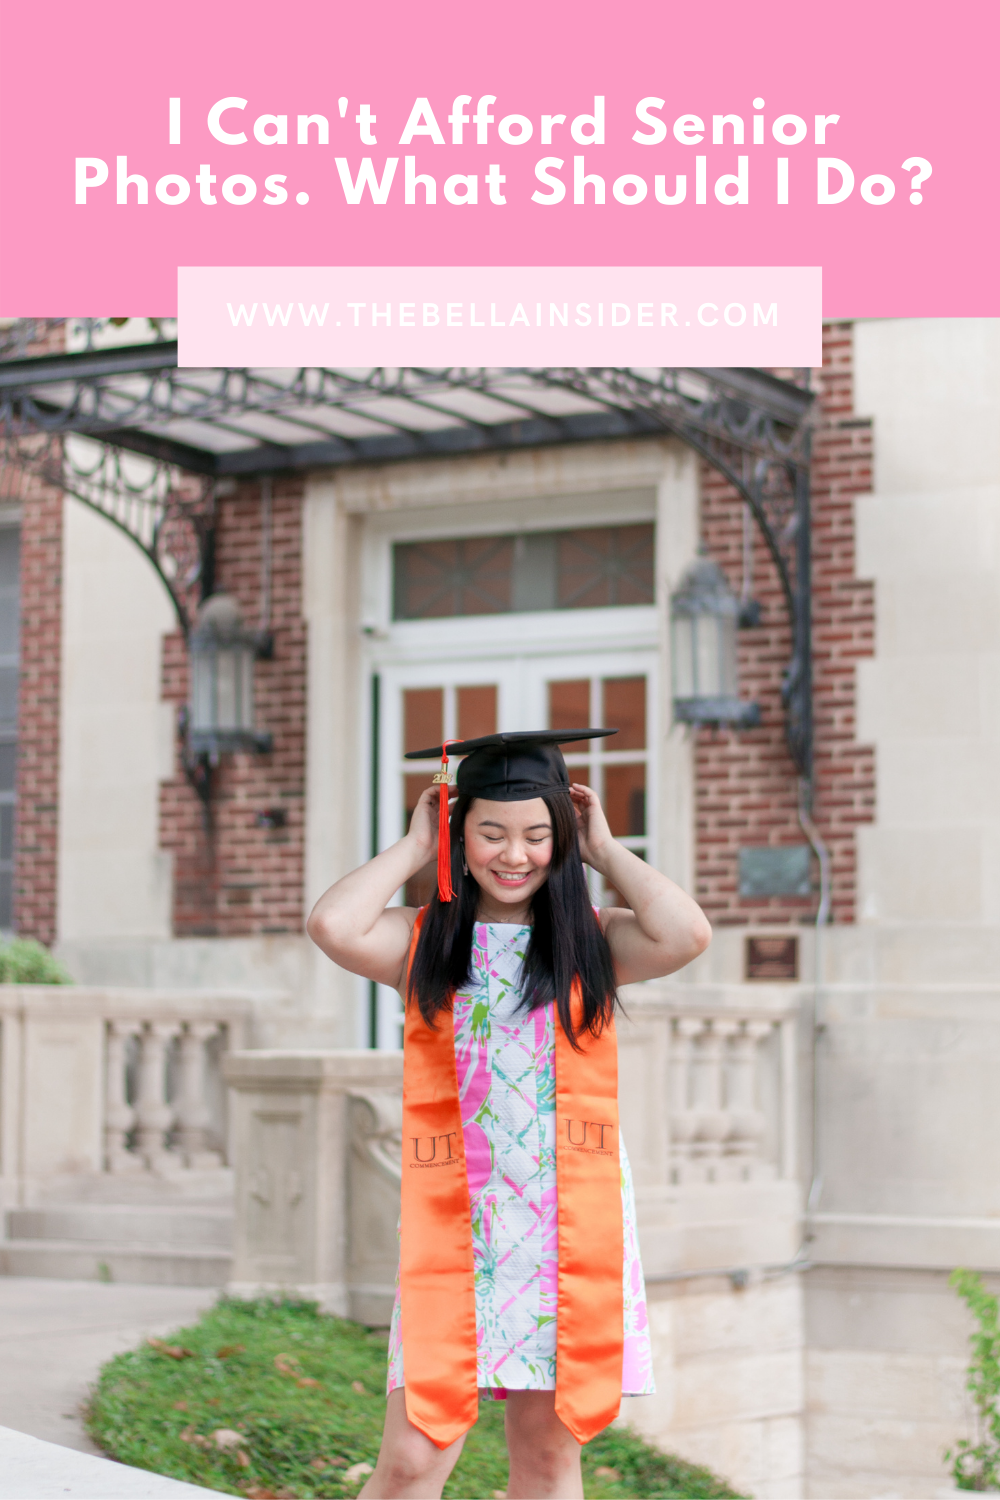 I Can't Afford Senior Photos. What Do I Do? - TheBellaInsider.com